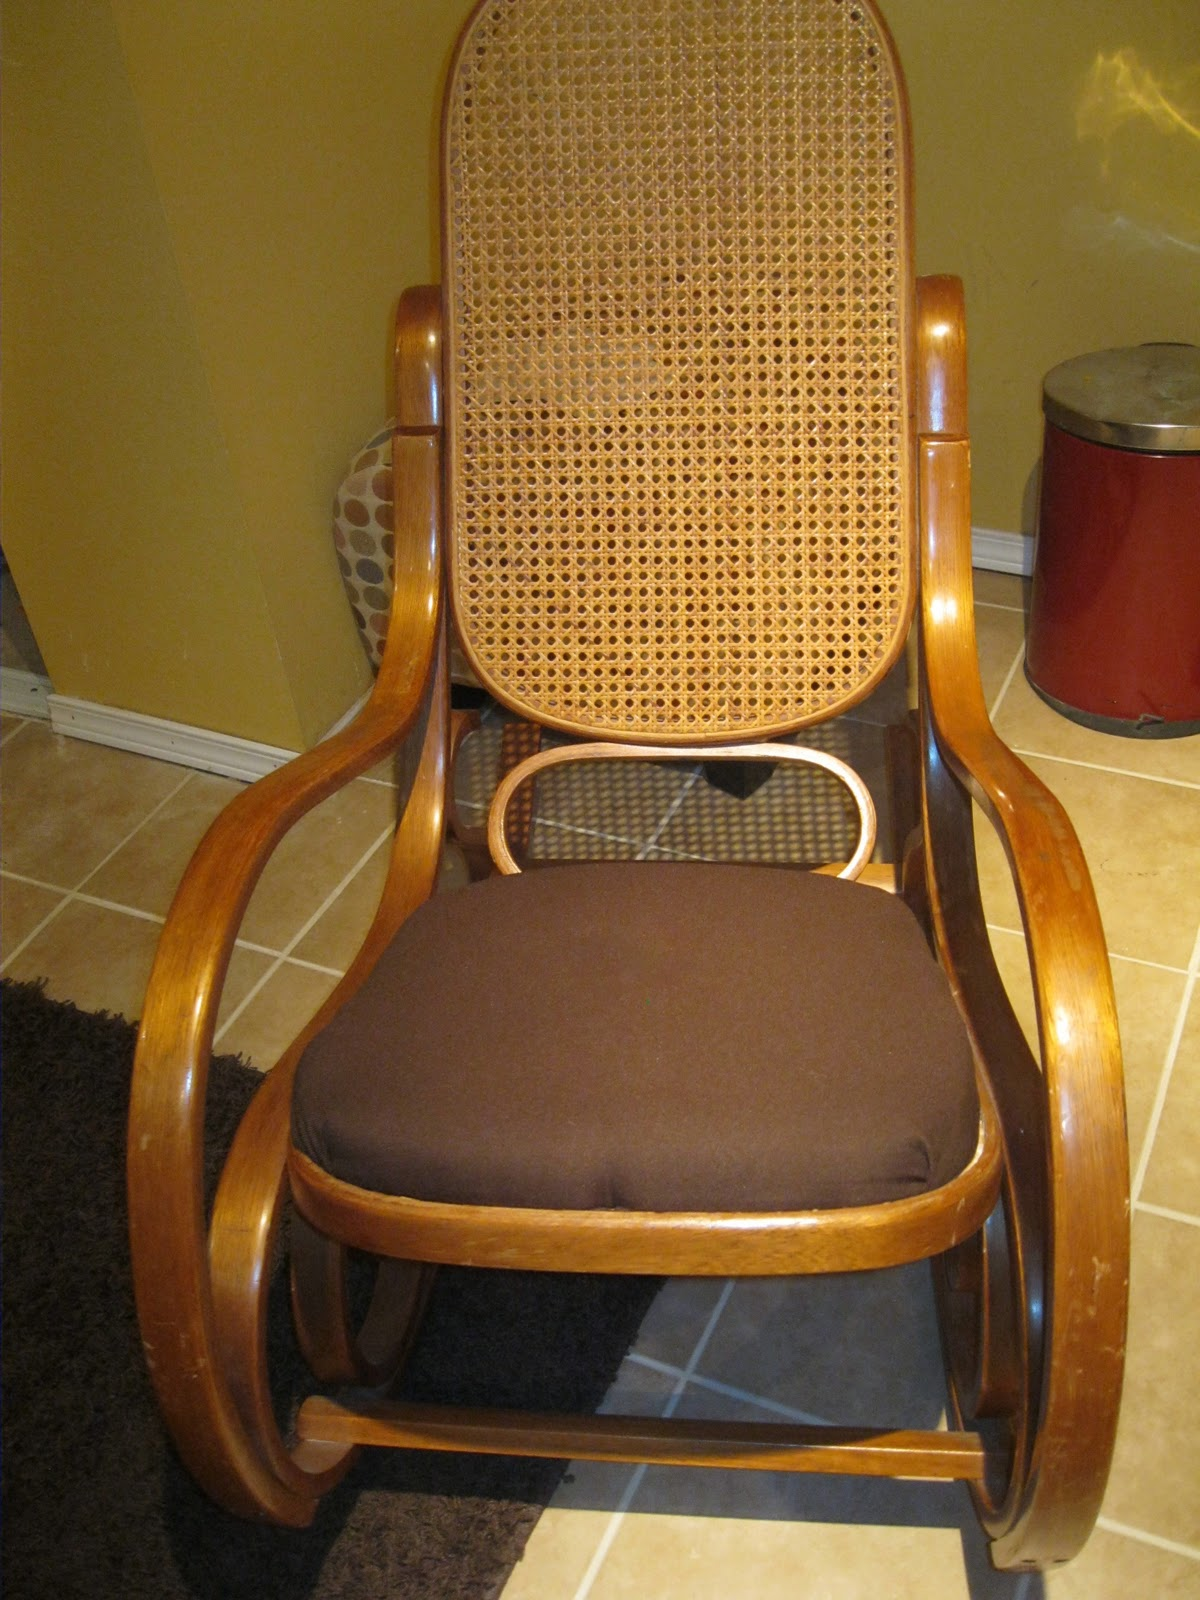 repairing cane seat chairs big comfortable nagle5 news quick fix for a bentwood rocker